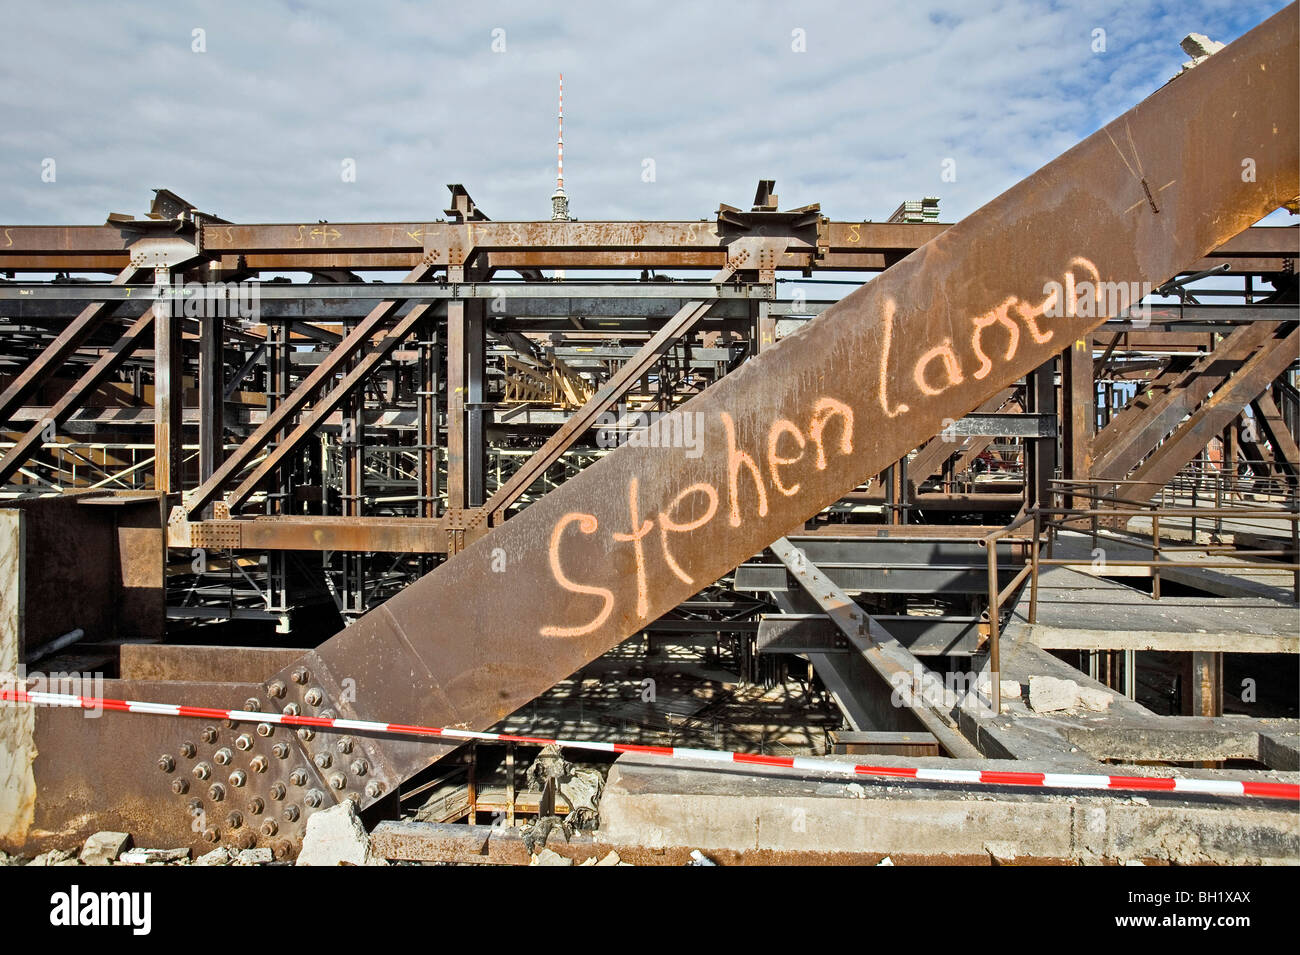 The Palast der Republik, Palace of the Republic, demolition started in February 2006, Berlin - Stock Image